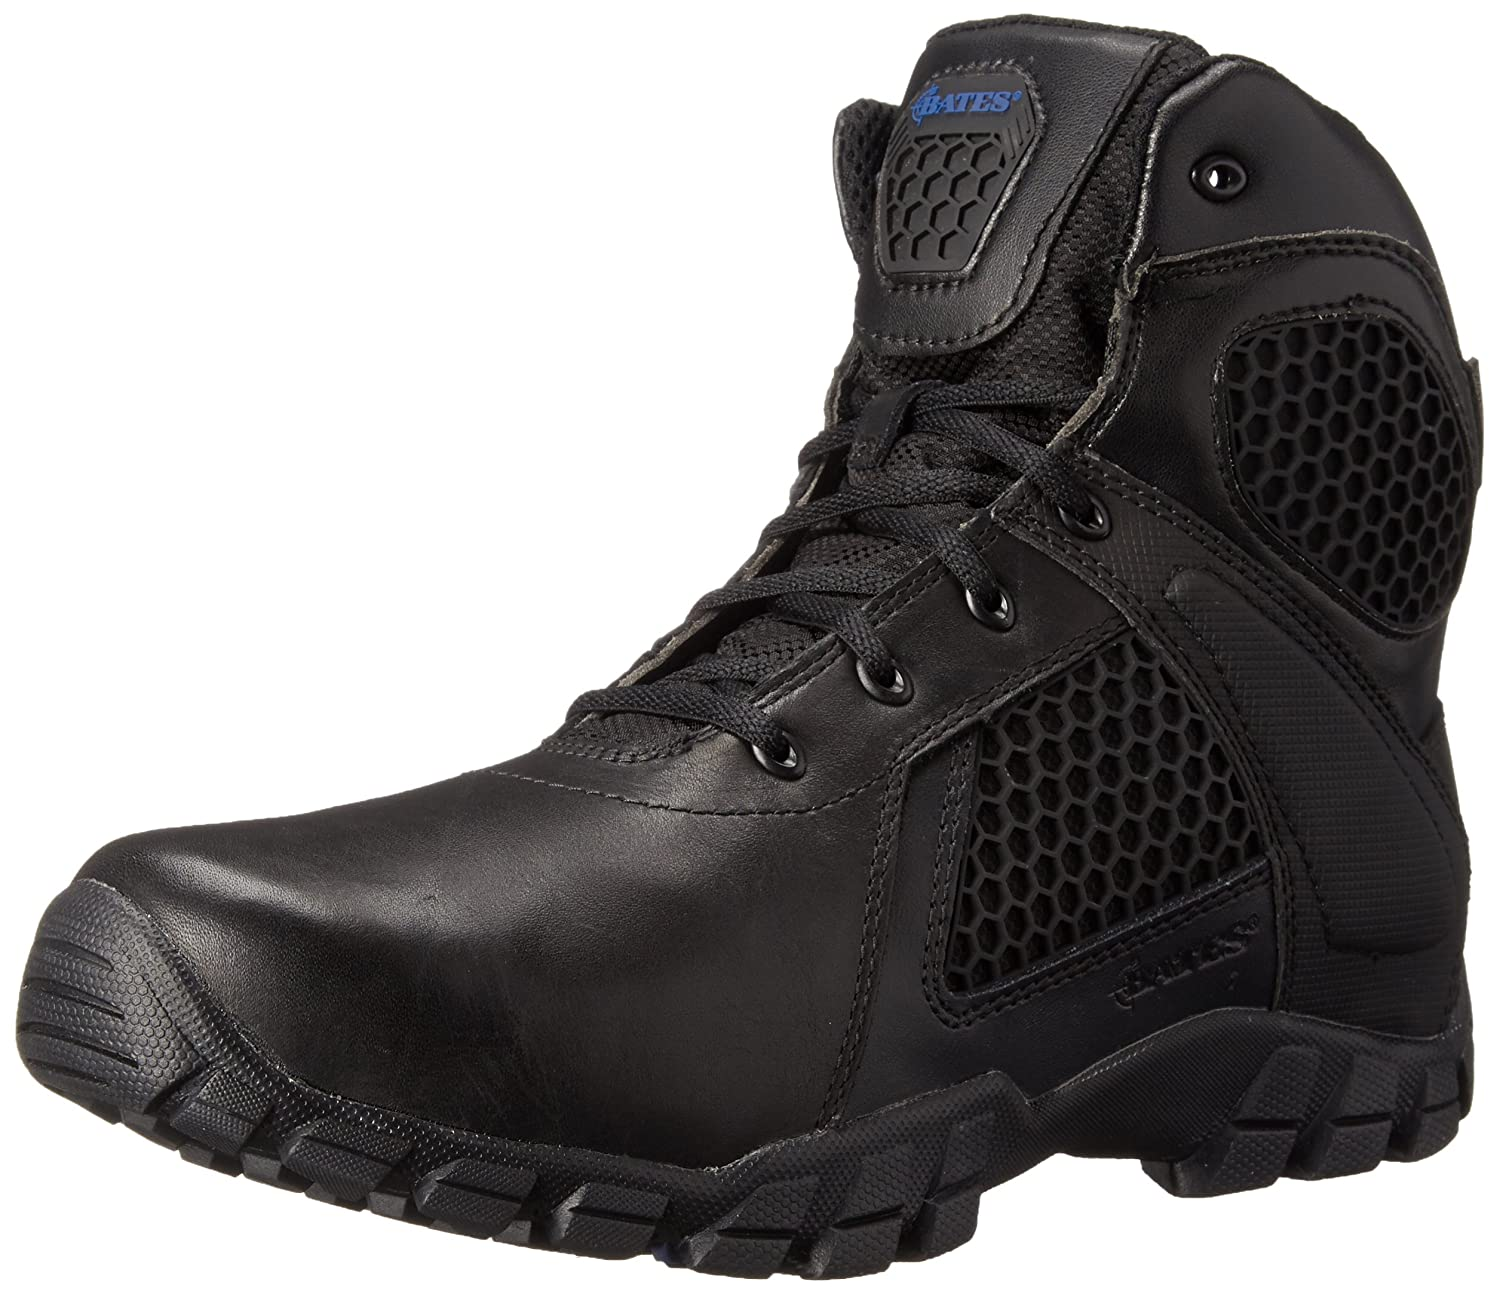 Bates Men's 6 Inch Strike Side Zip Waterproof Tactical Boot Bates Tactical Footwear 6